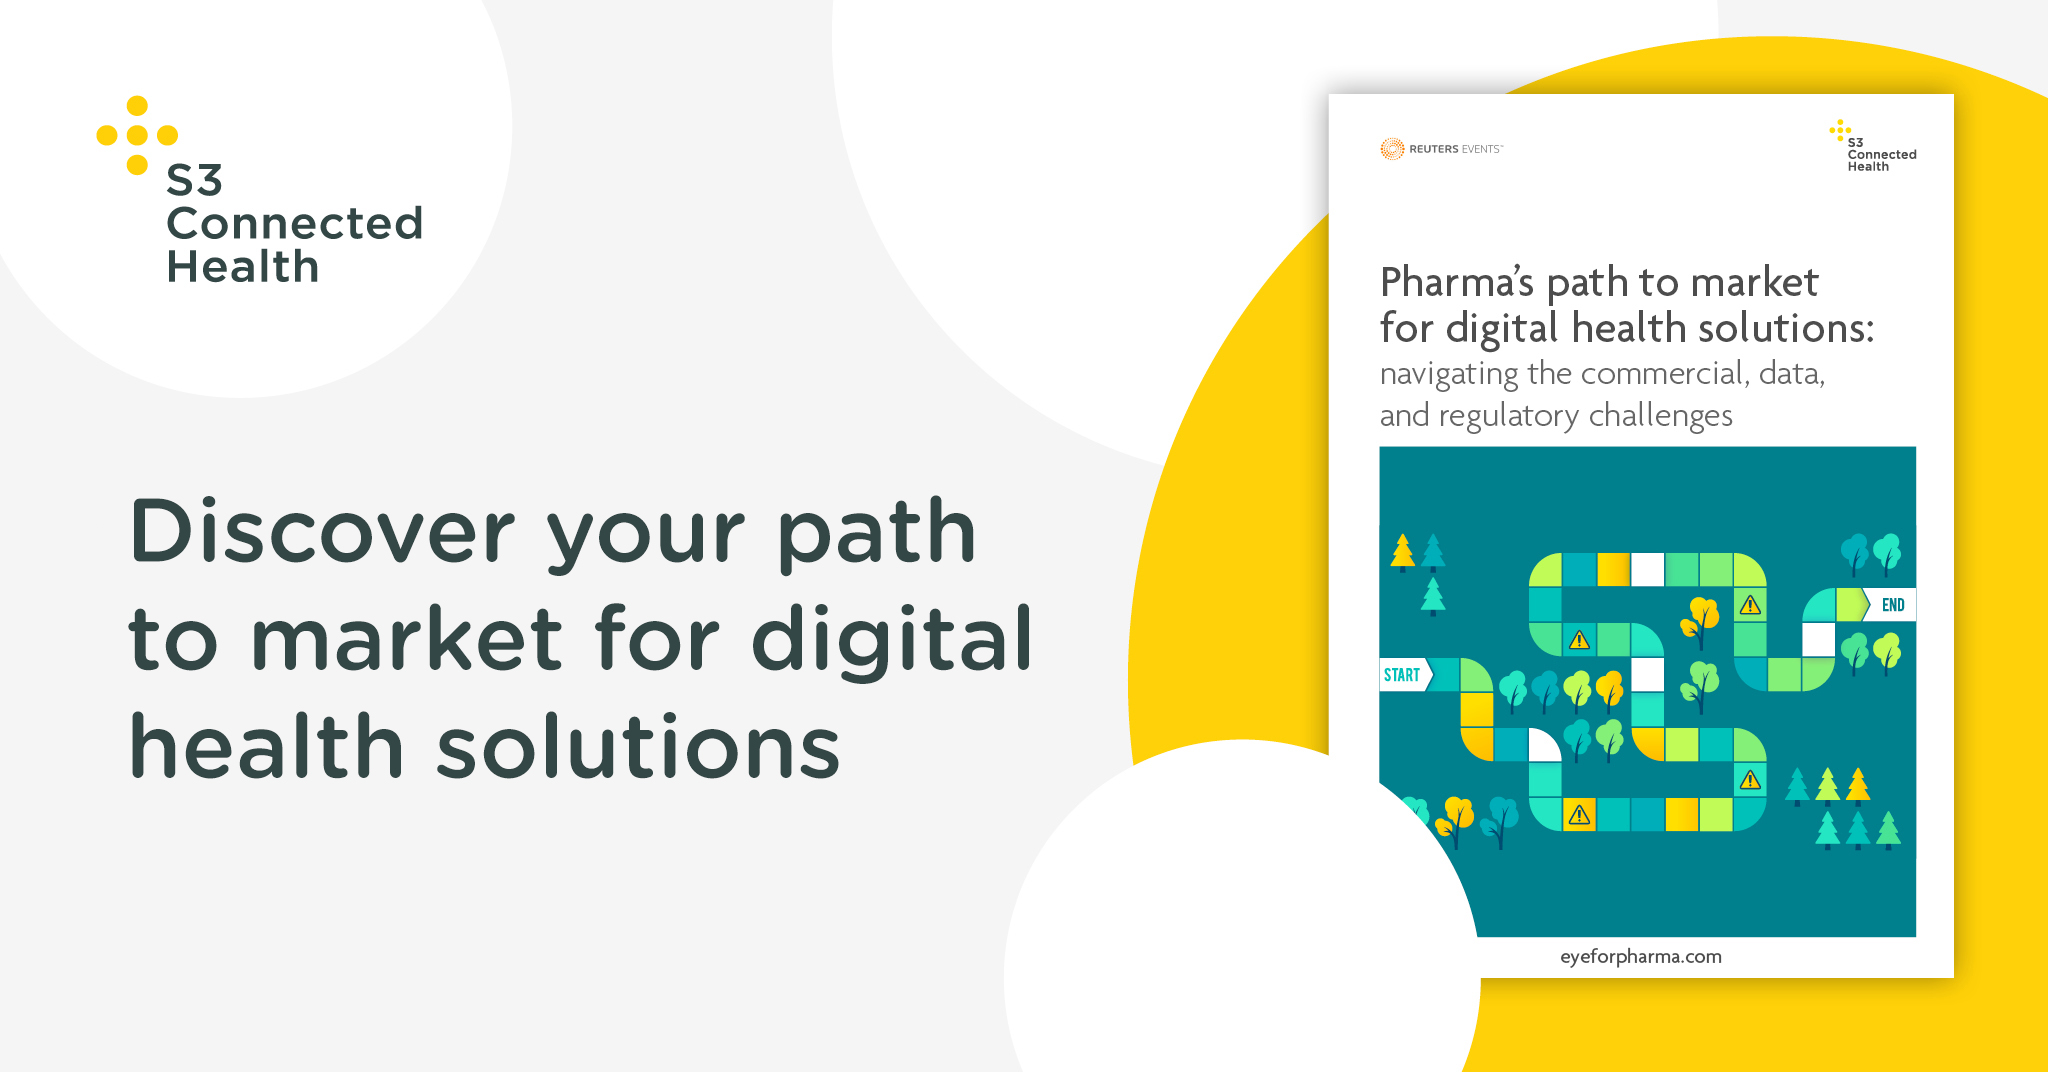 Whitepaper release: Pharma's path to market for digital health solutions: navigating the commercial, data, and regulatory challenges